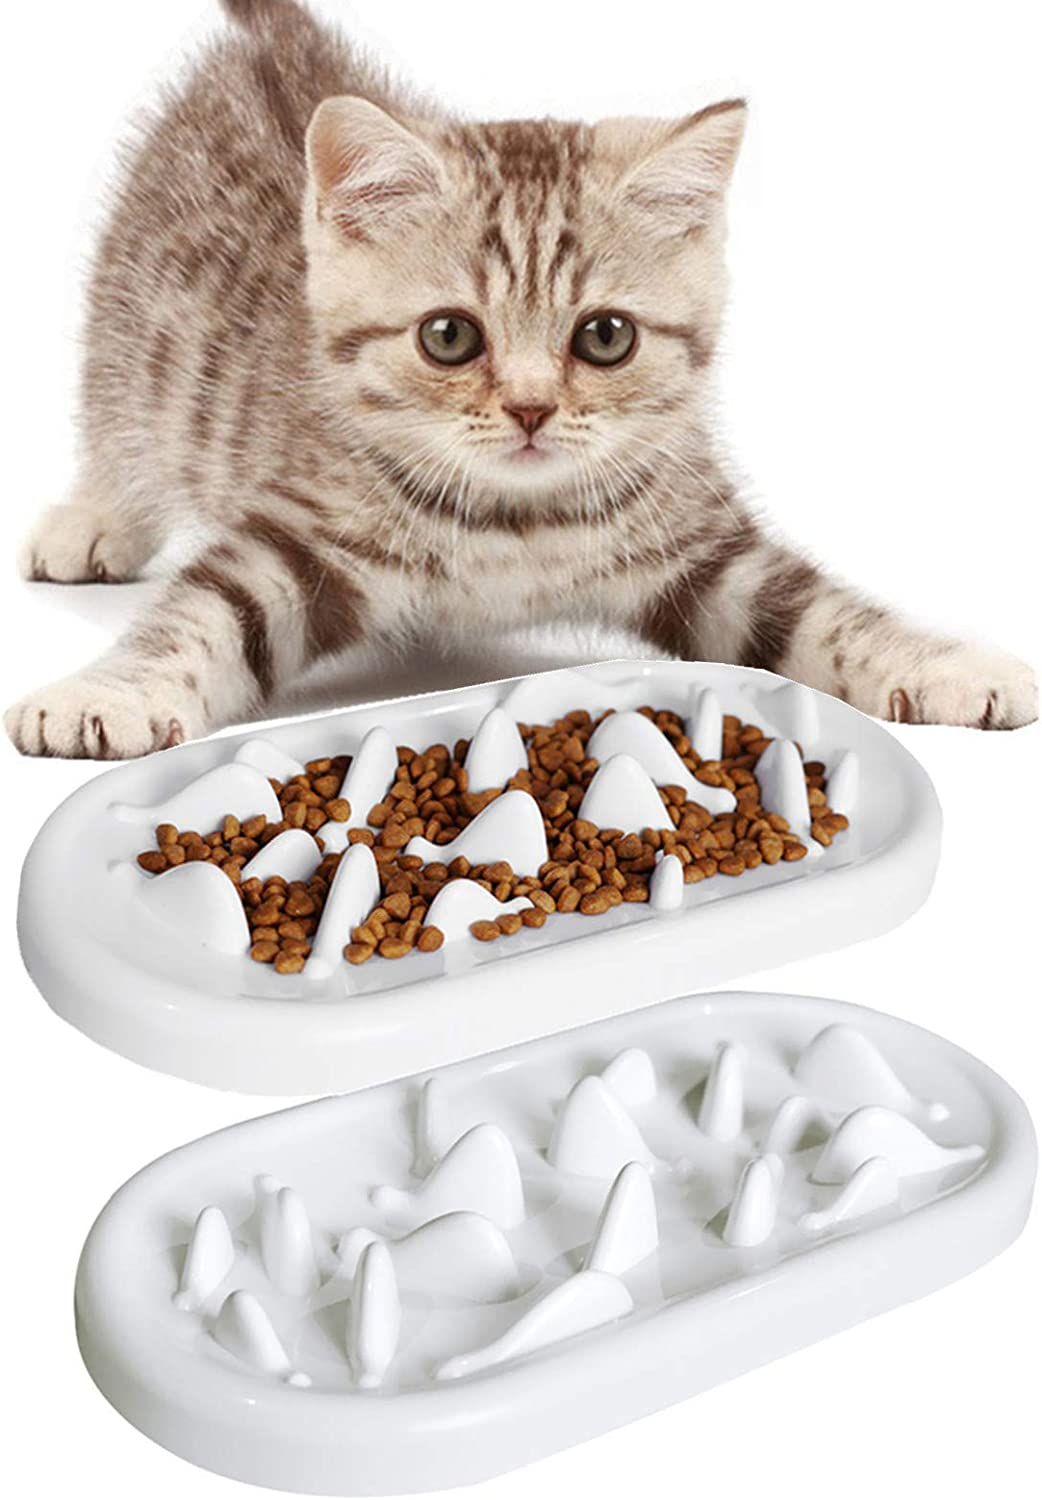 none branded 2 Pack Cat Slow Feeder Bowl,HICOMIE Pet Fun Interactive Slow Feeder Cat Bowl,Stress Free Pet Bowl Helps Stop Bloat Prevents Obesity Improves Digestion